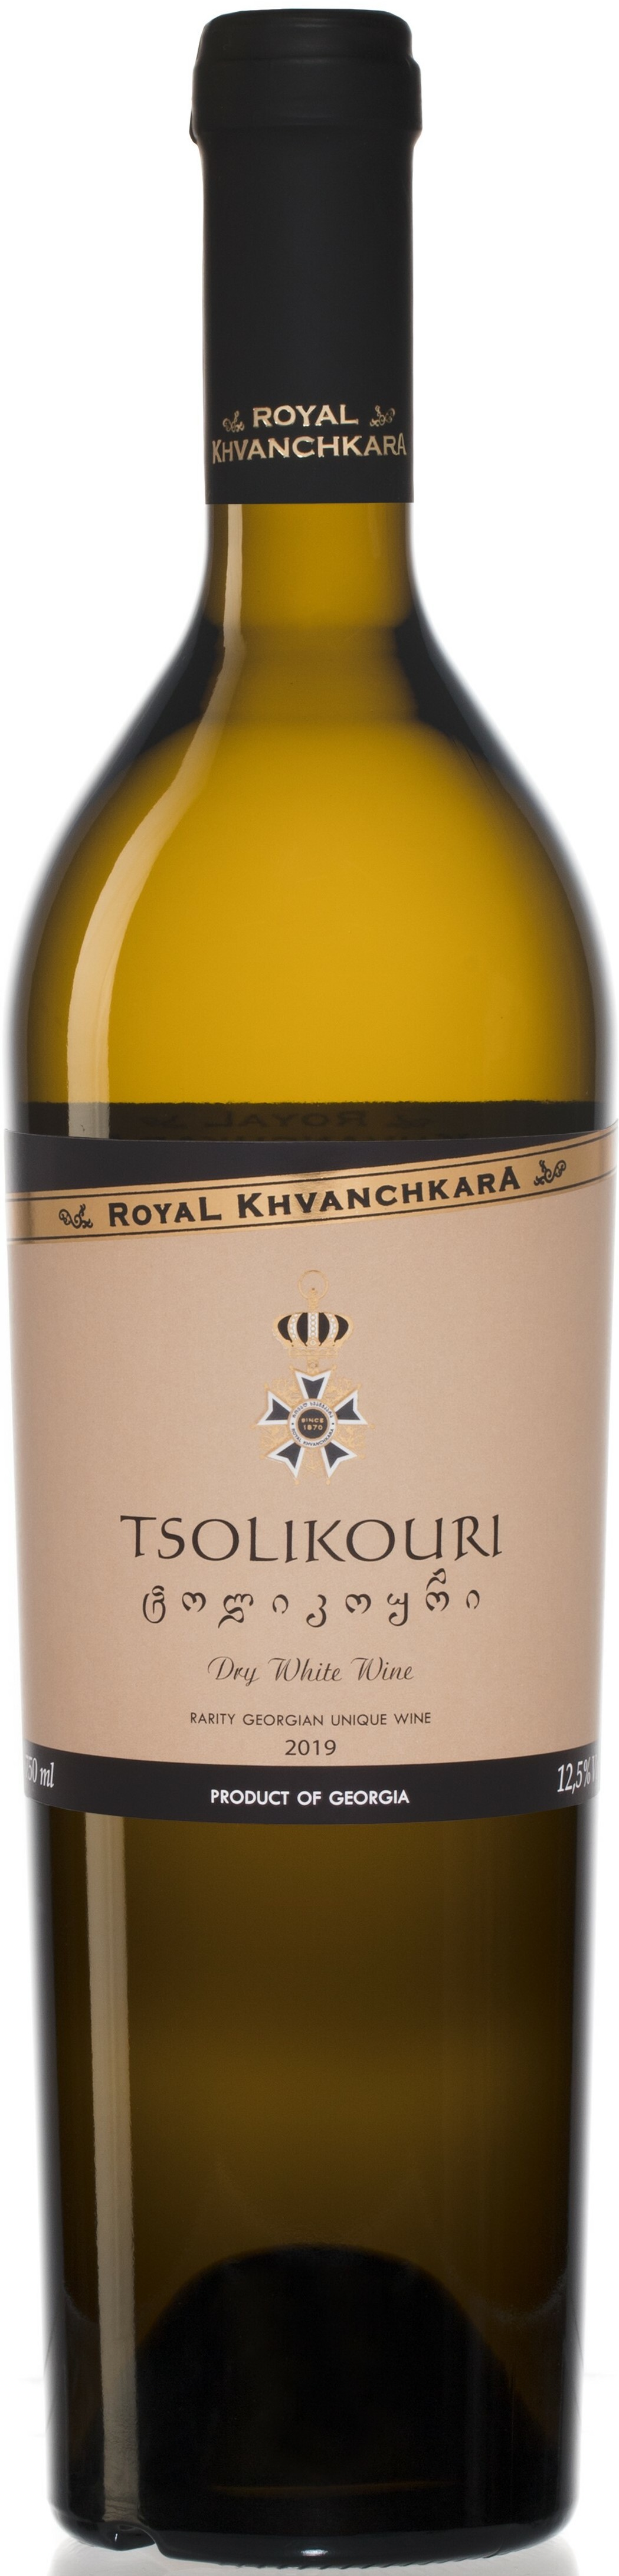 TSOLIKOURI - ROYAL KHVANCHKARA